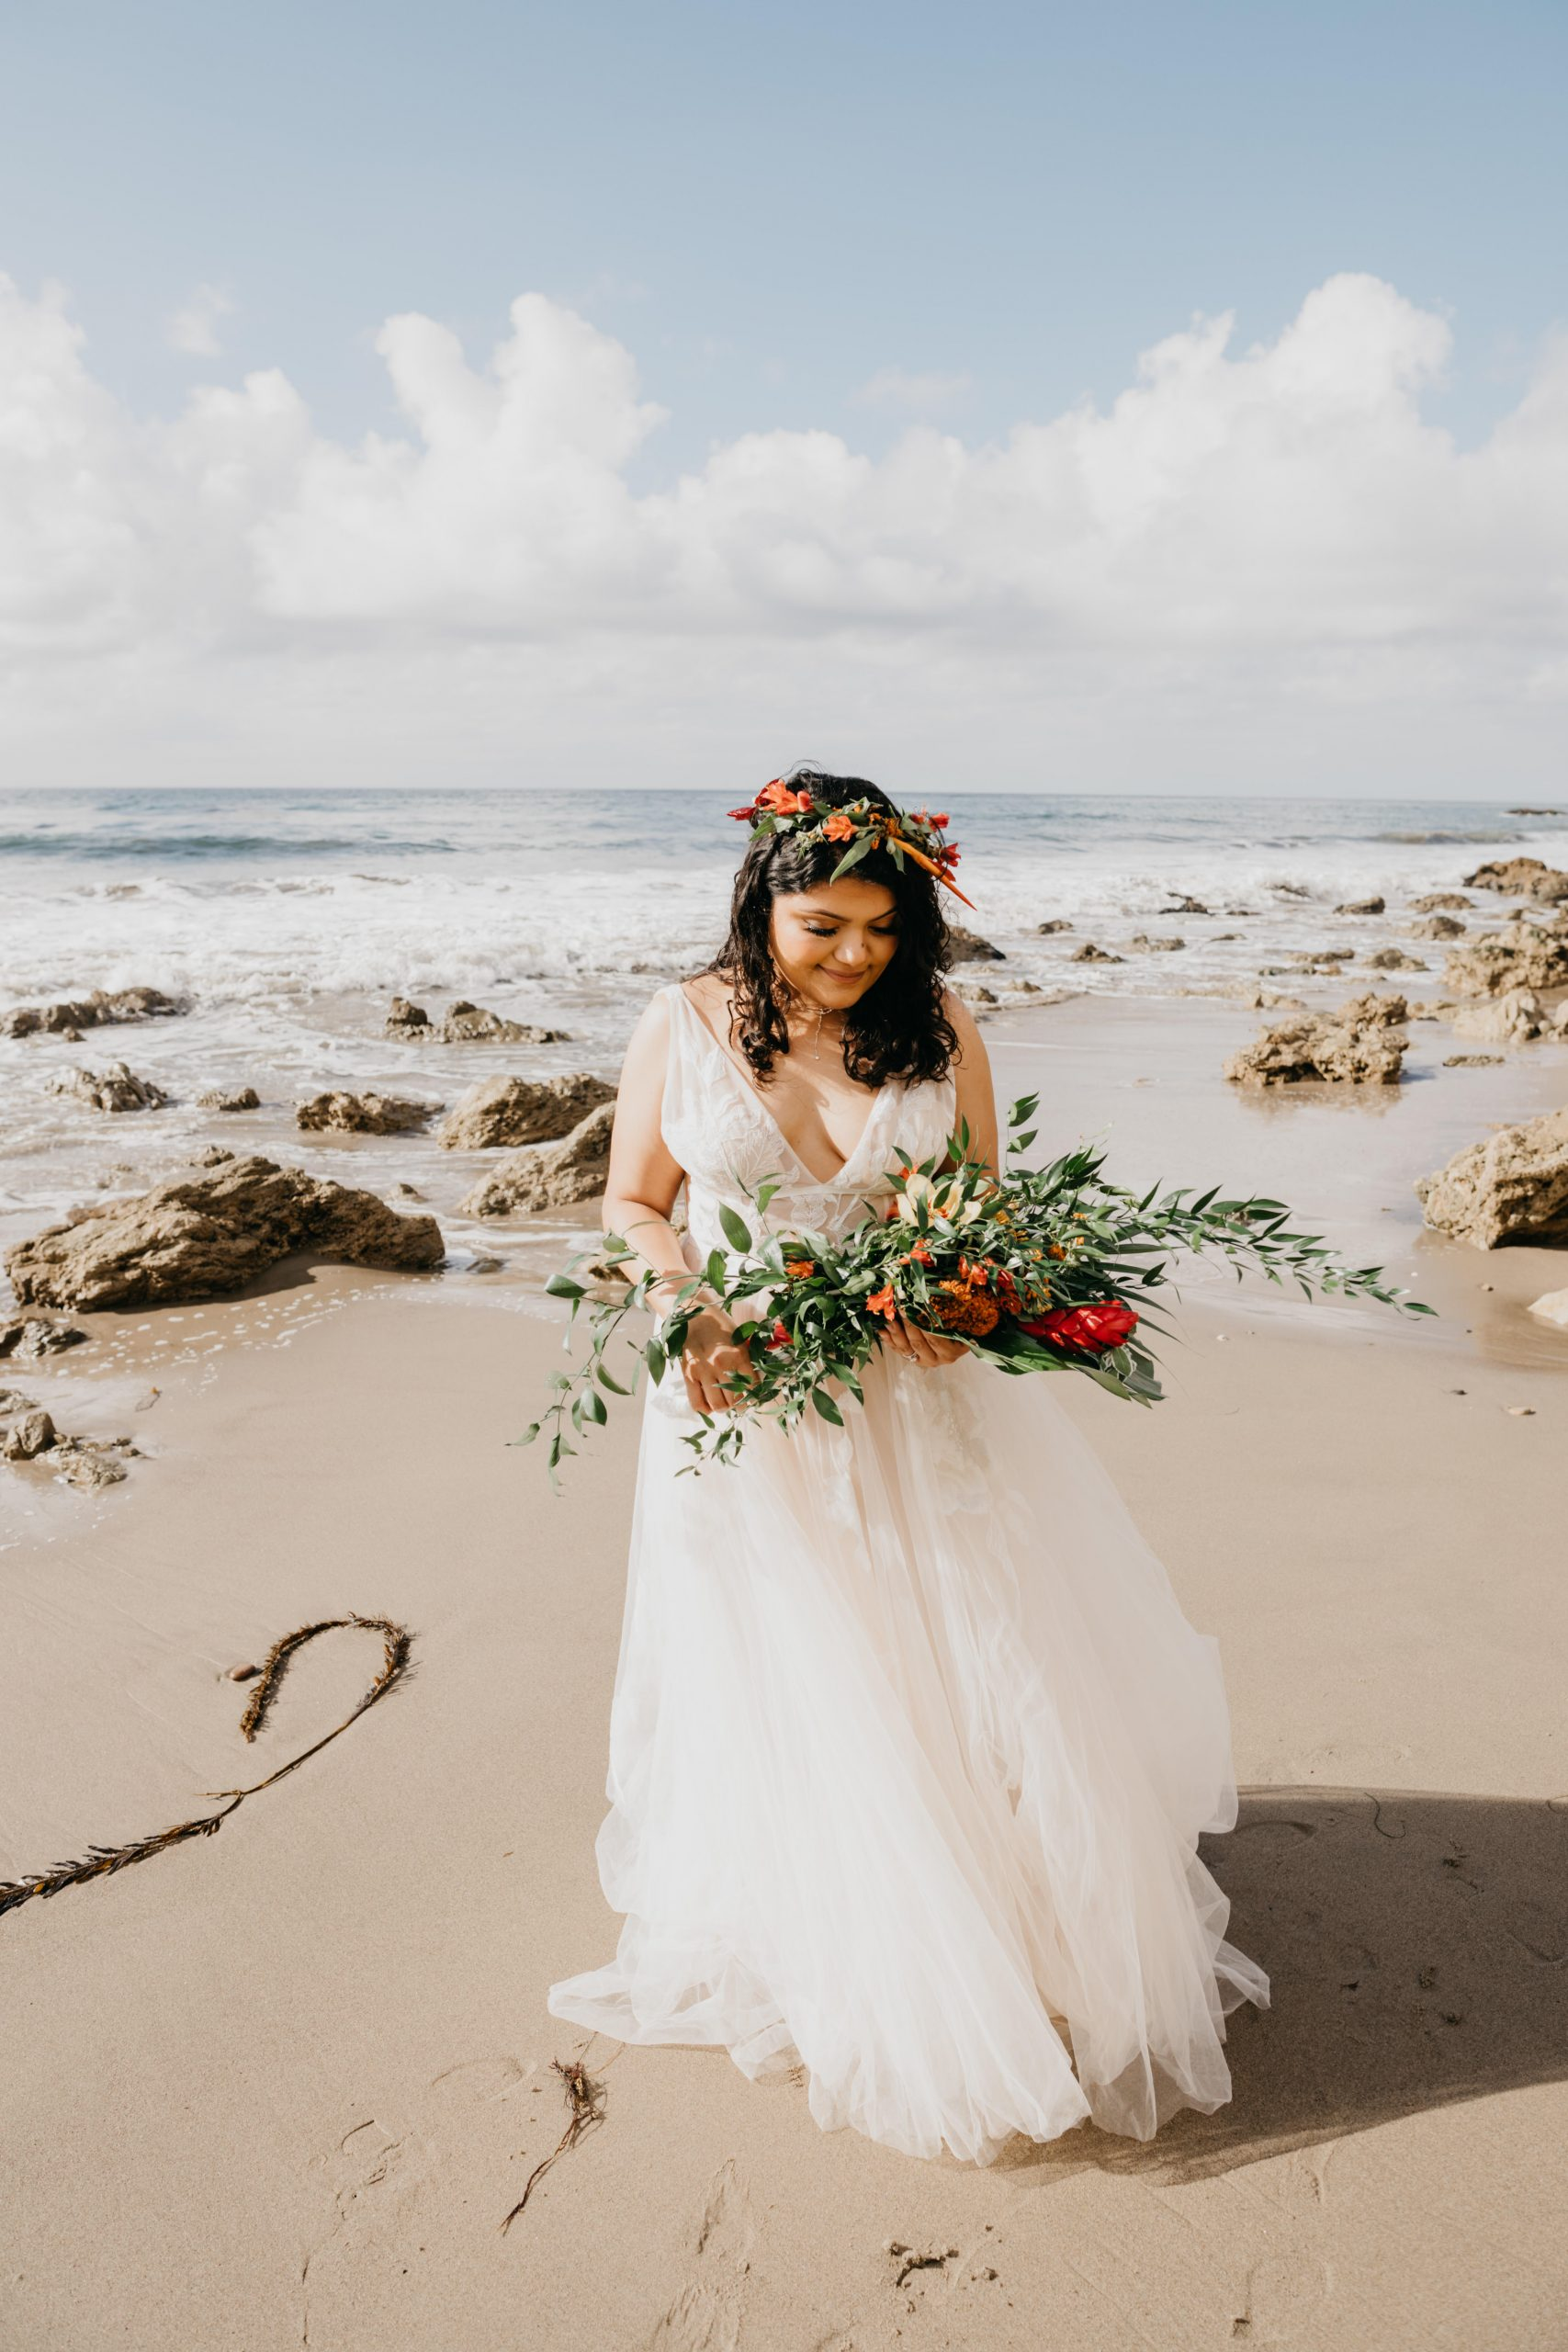 Bride portrait in the beach, image by Fatima Elreda Photo